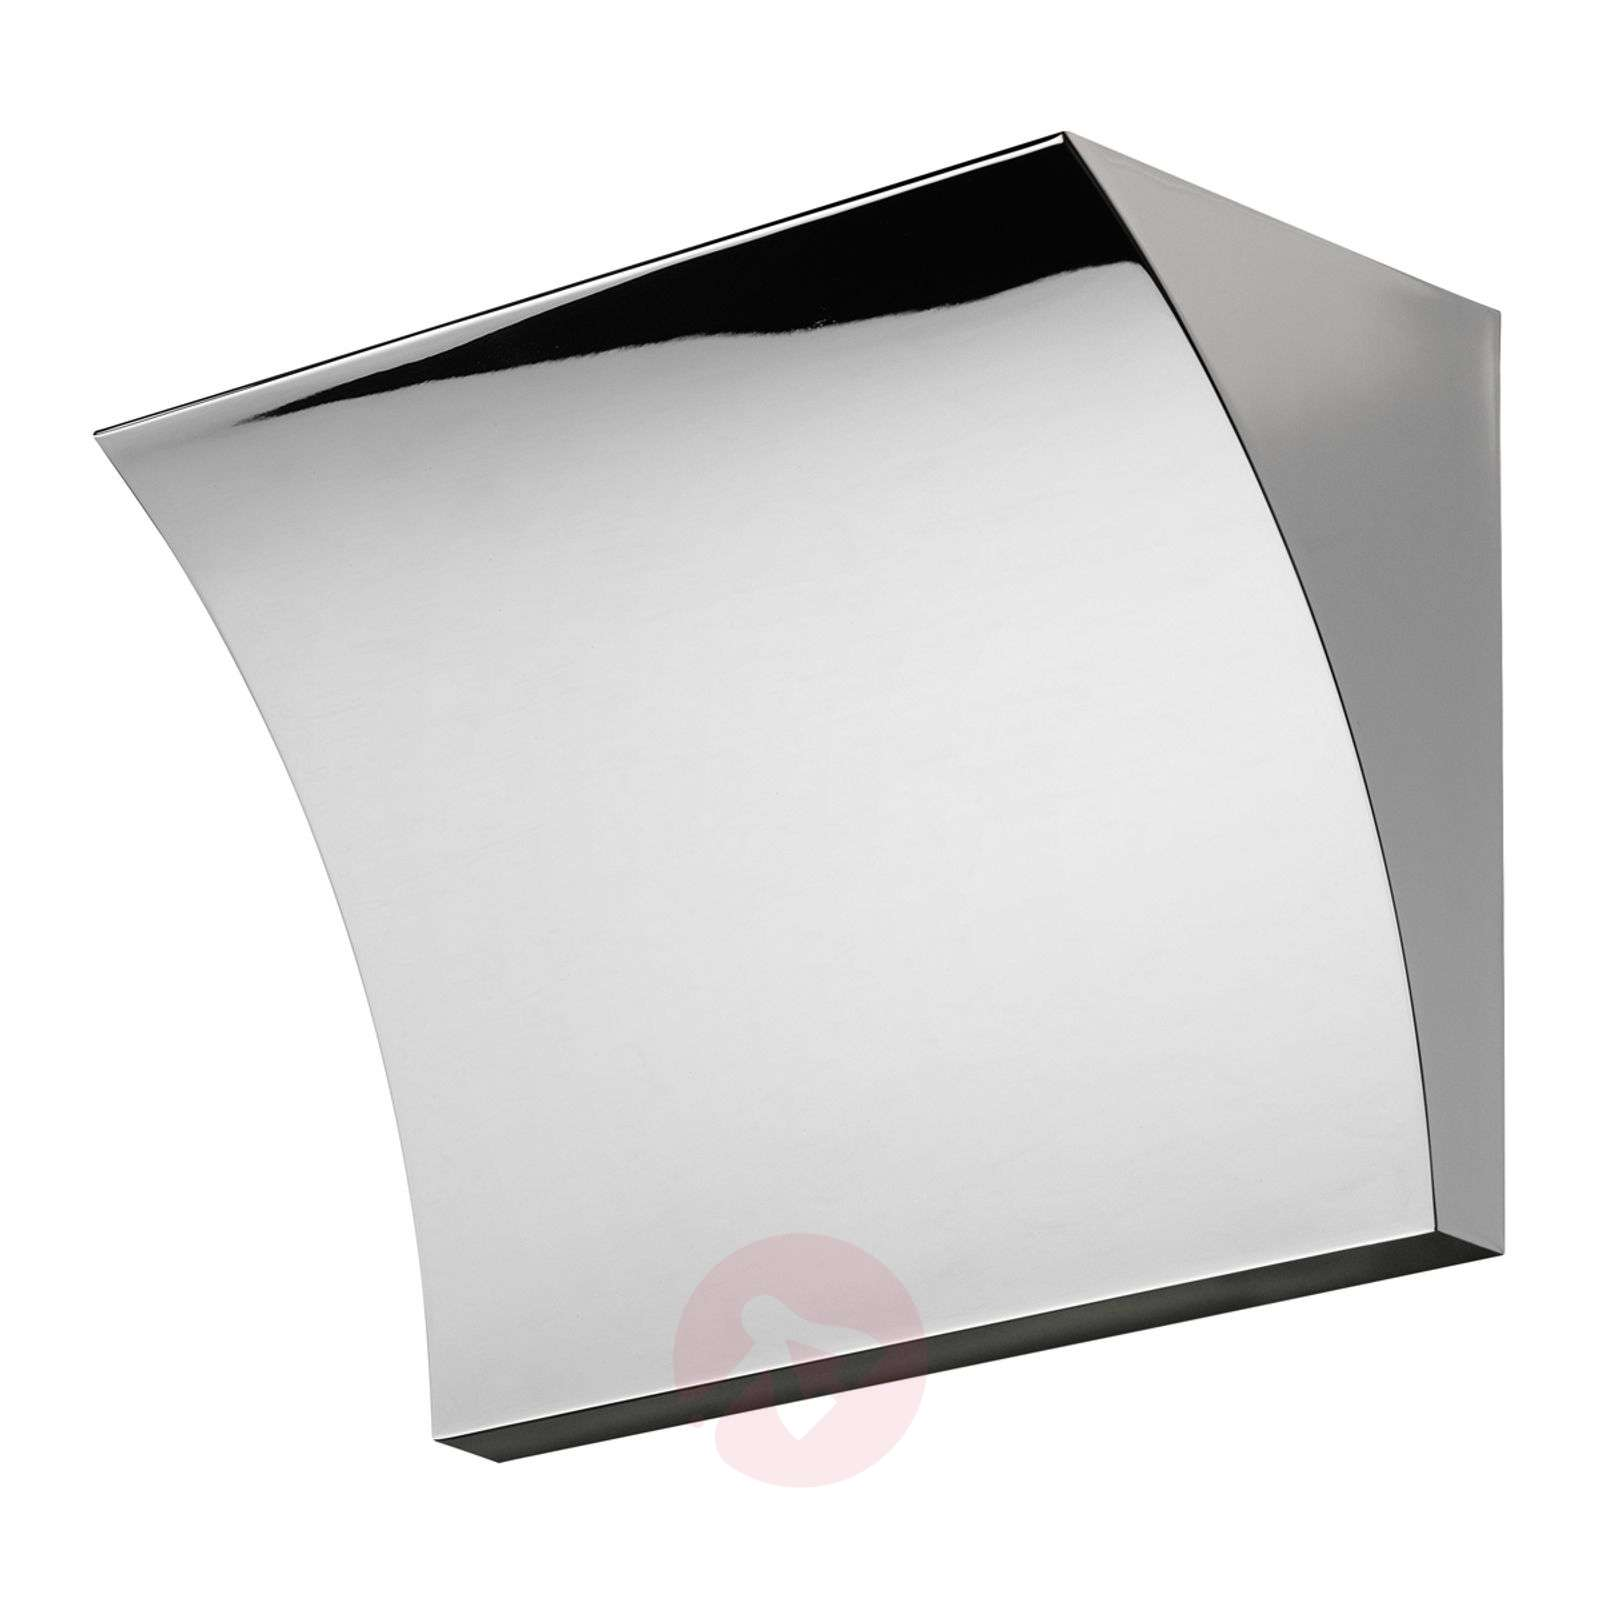 POCHETTE UP DOWN wall light with a chrome look-3510080-02